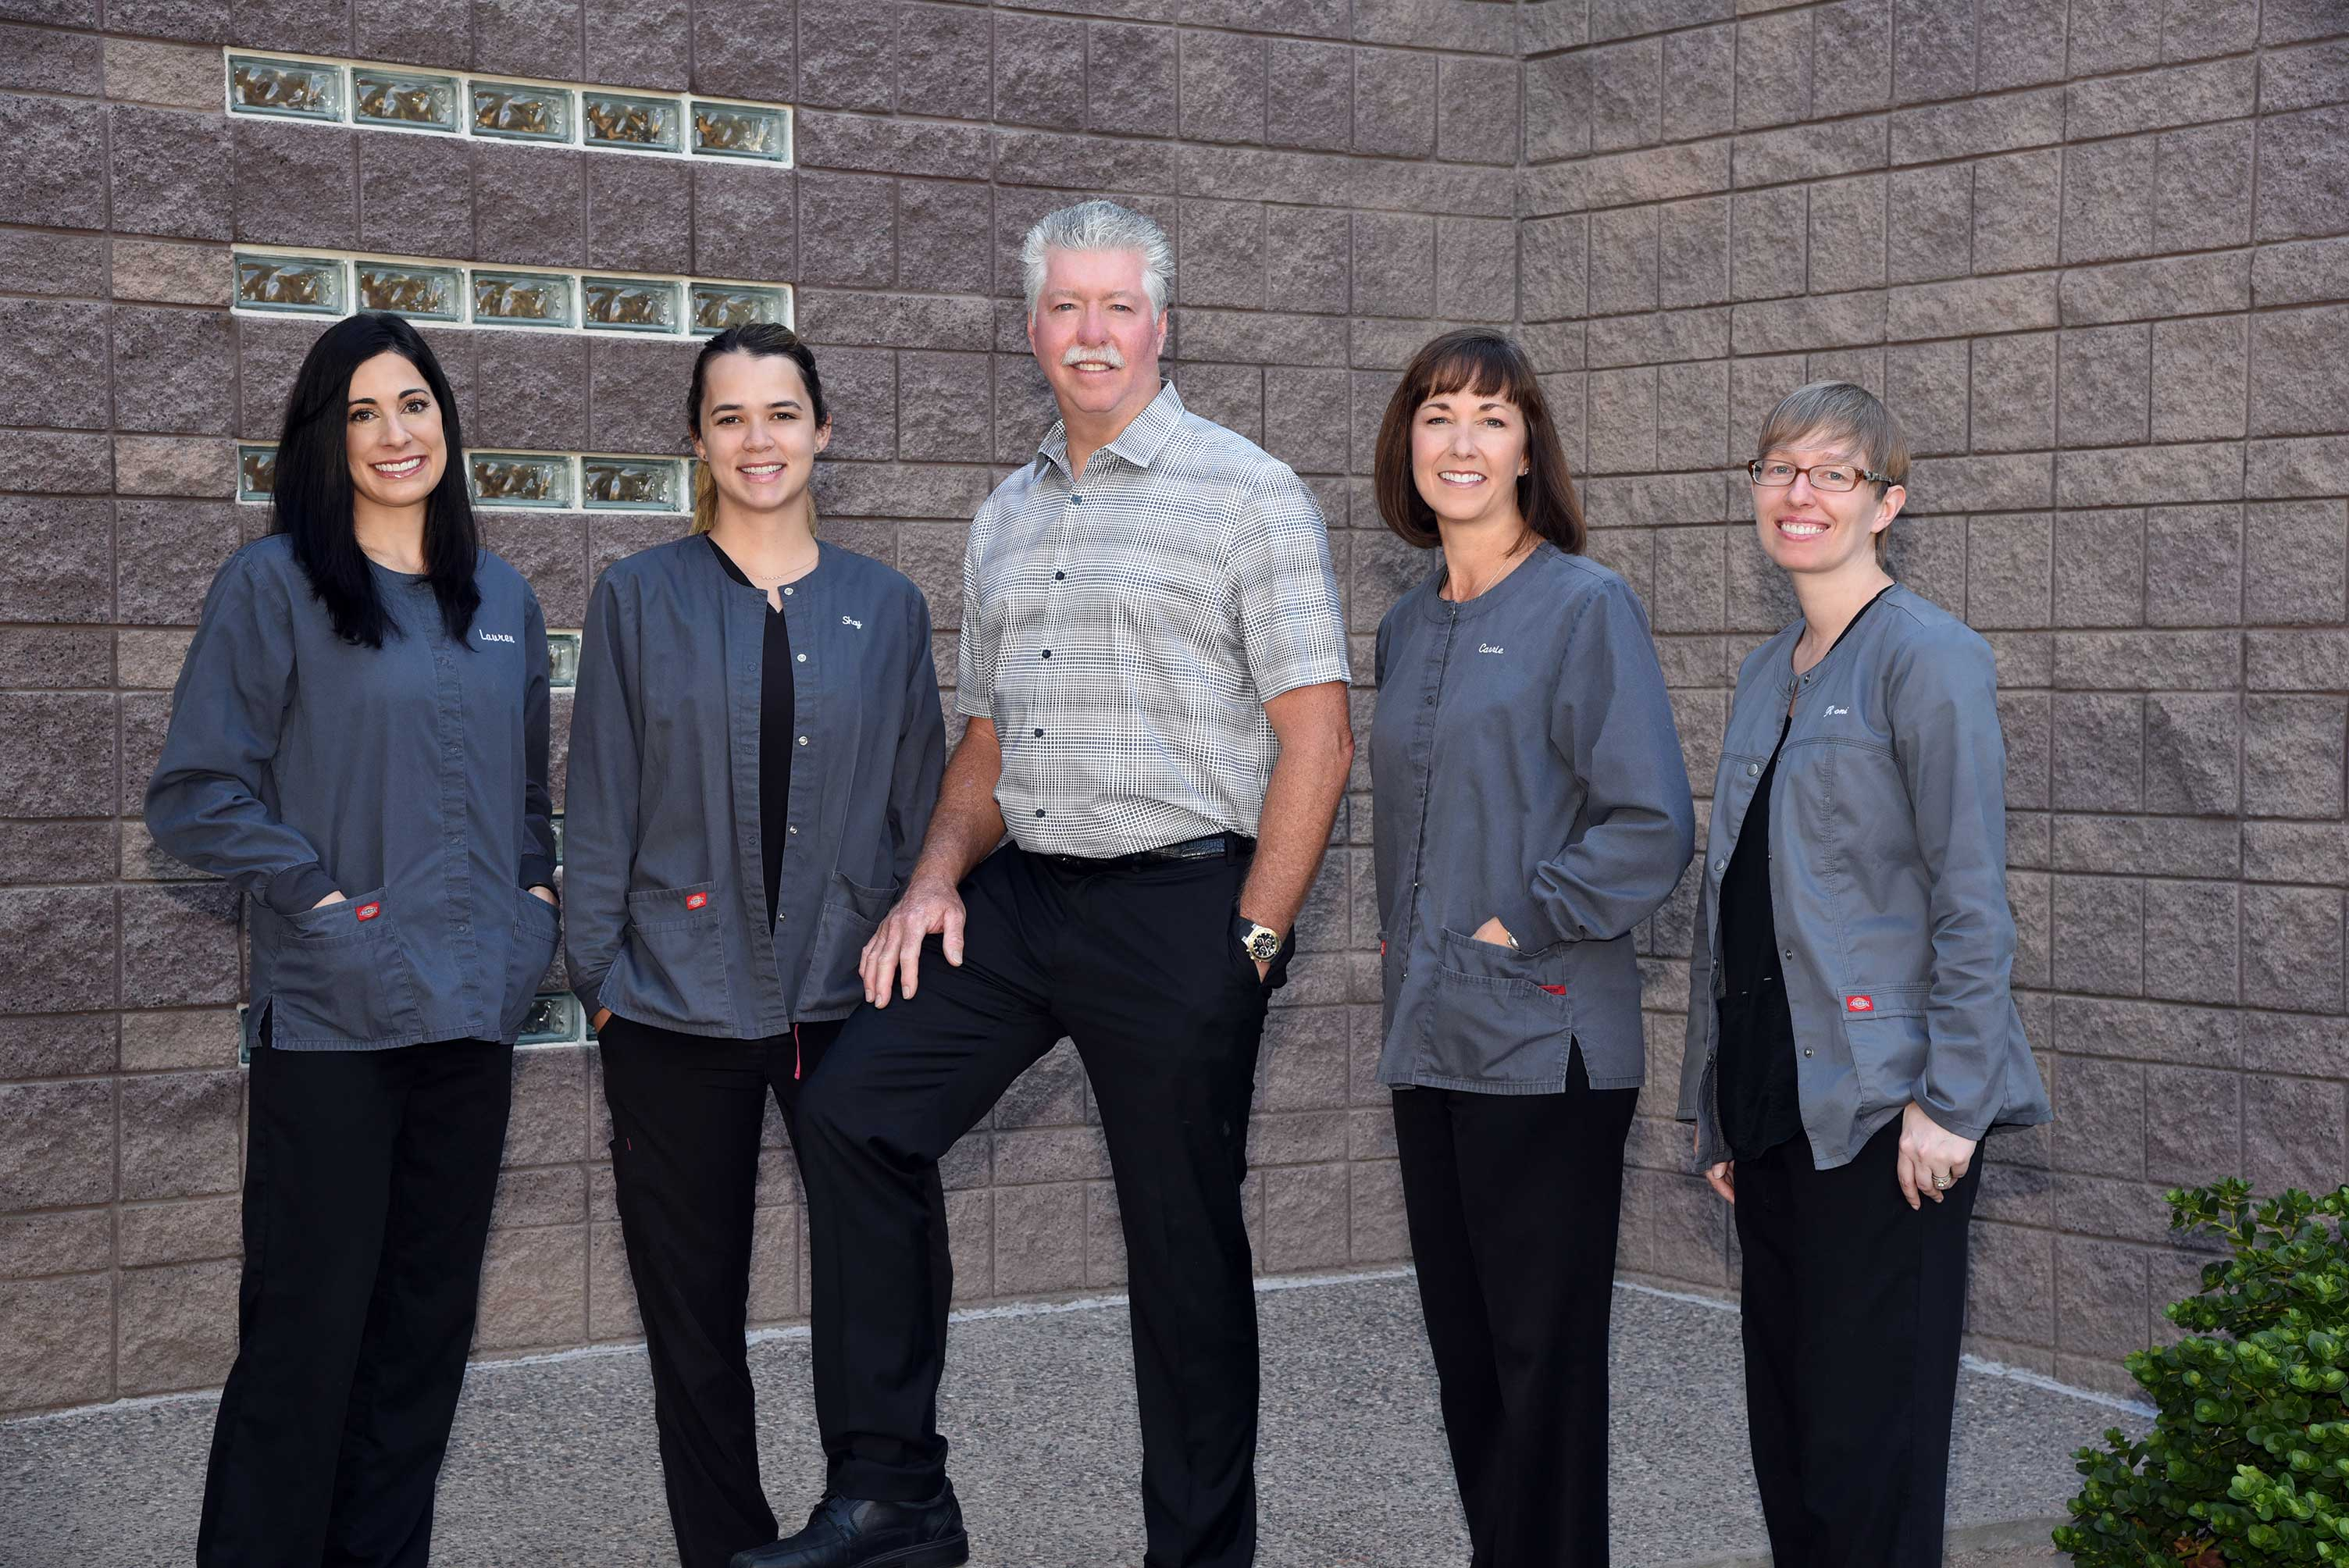 Dr. Schneider and dental staff